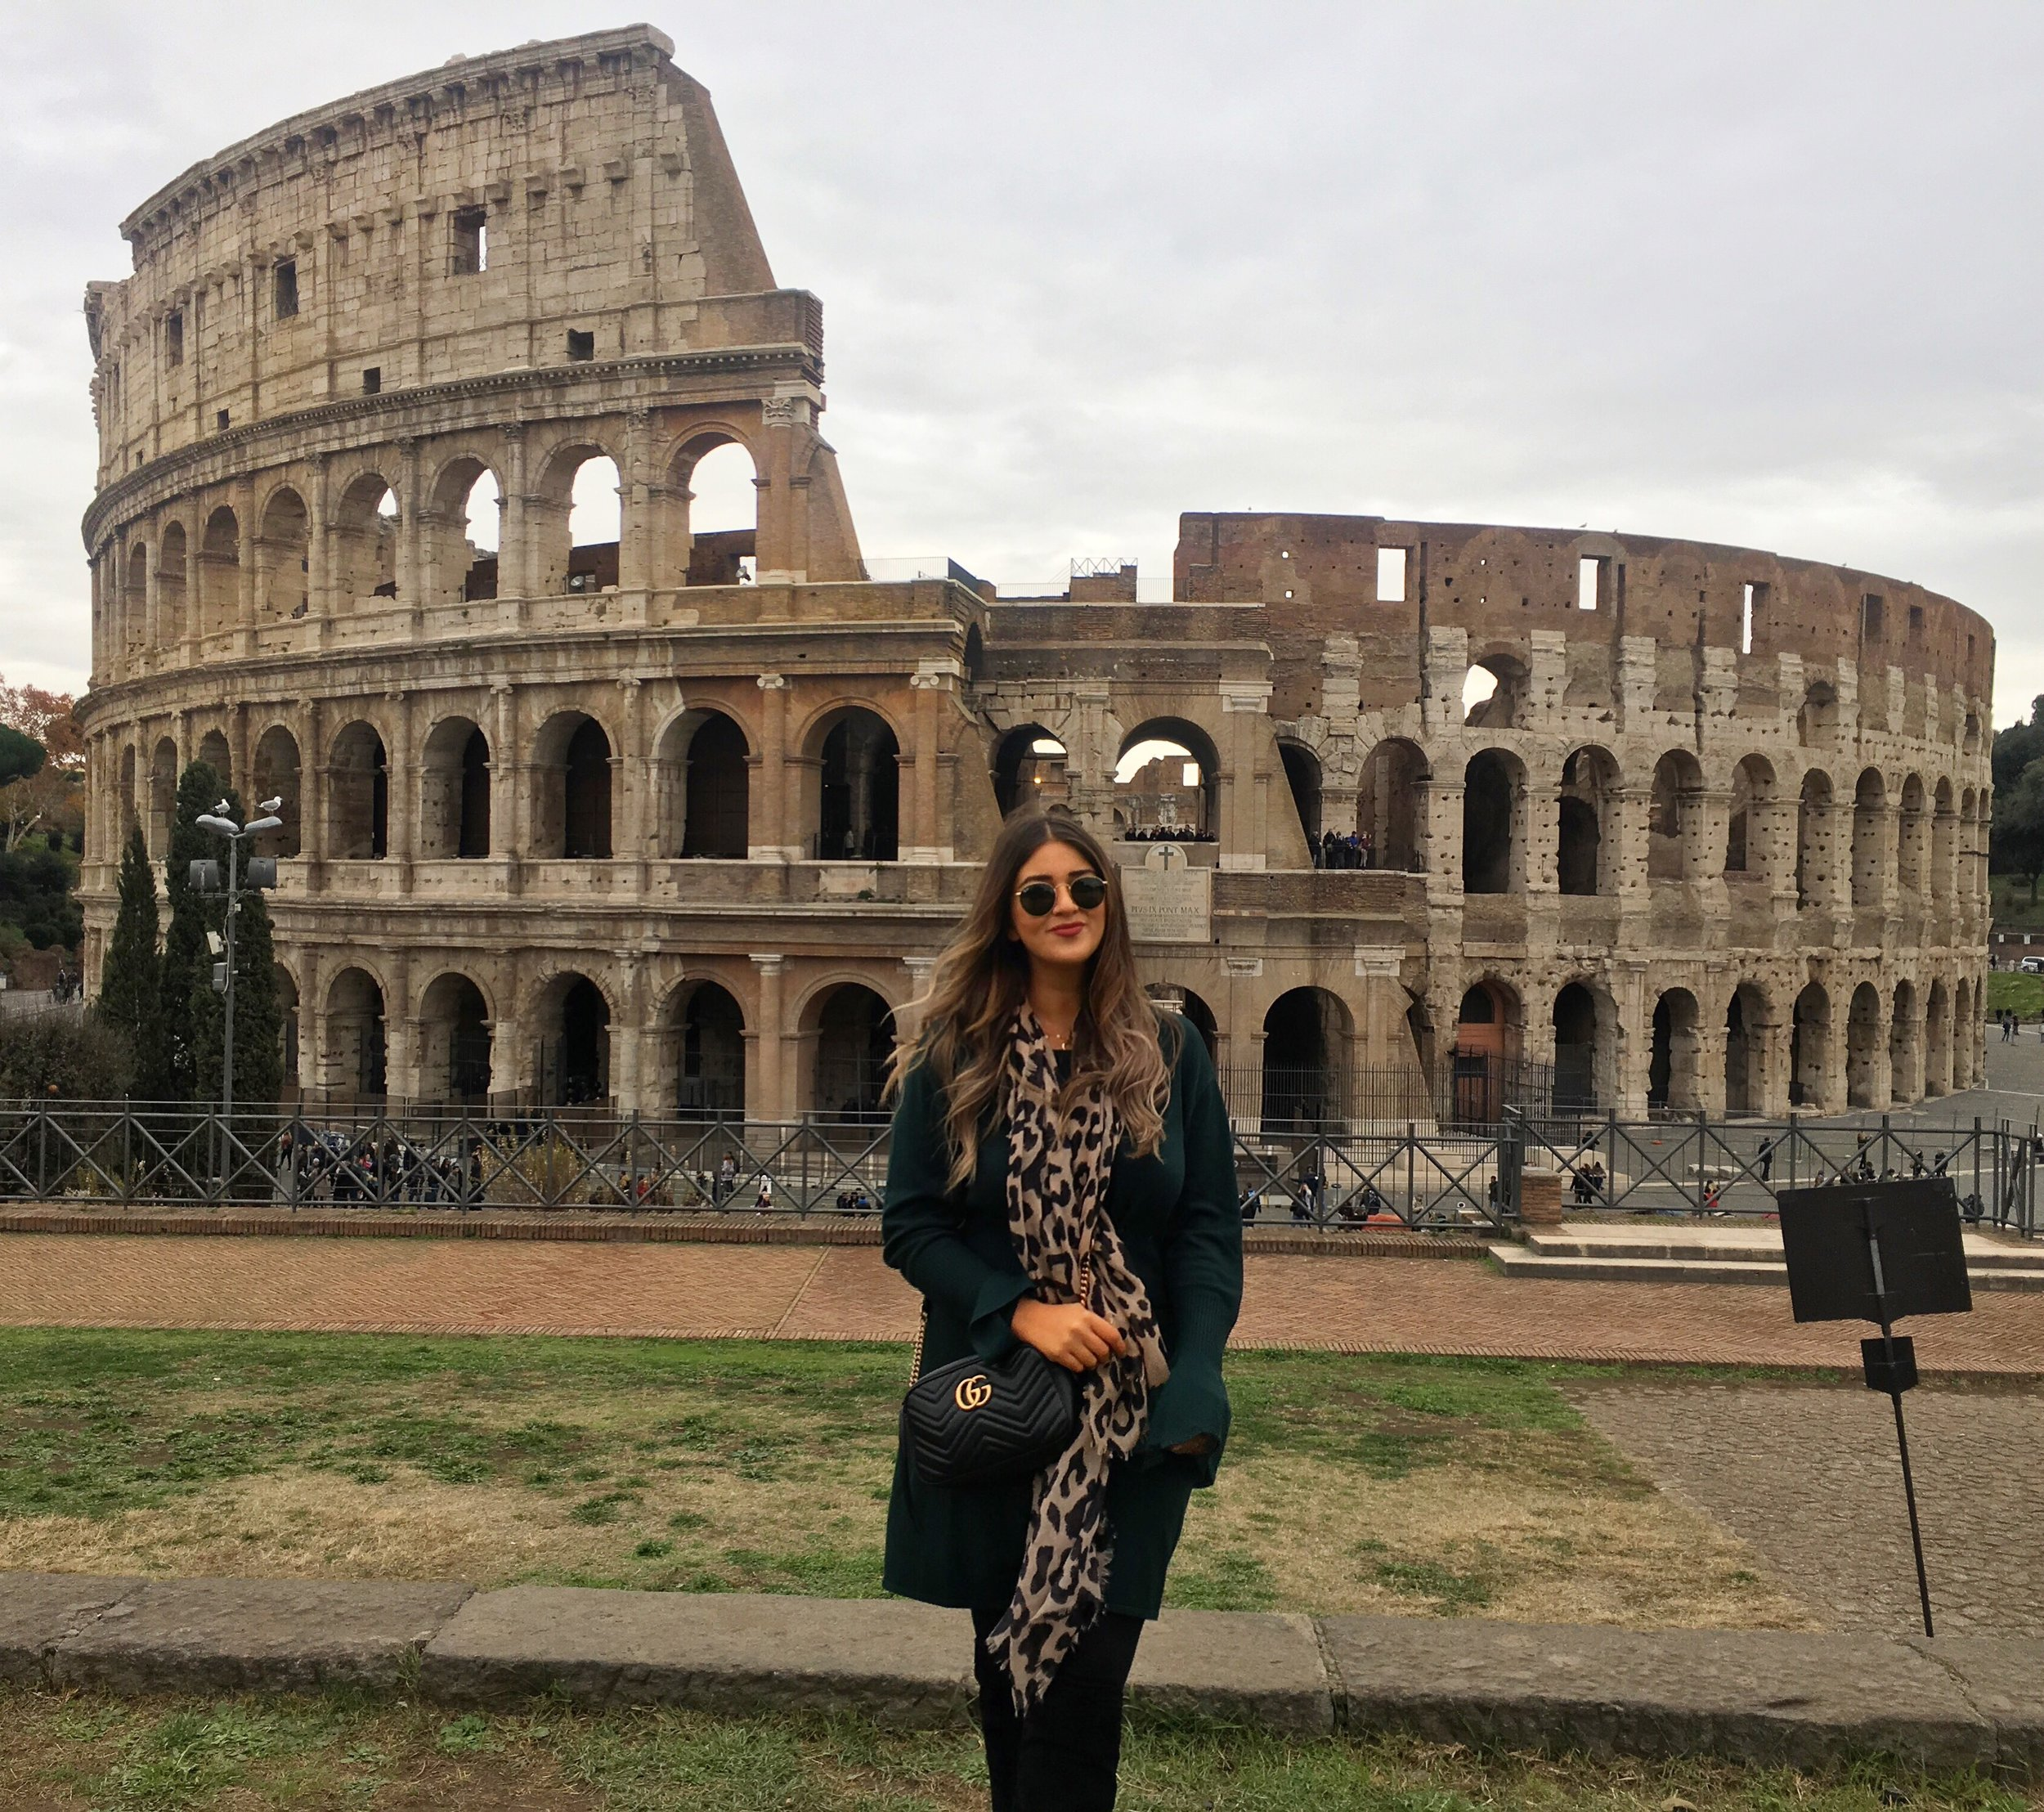 Posing in front of the Colosseum in Rome after consuming way too much pizza and wine. Worth it though!